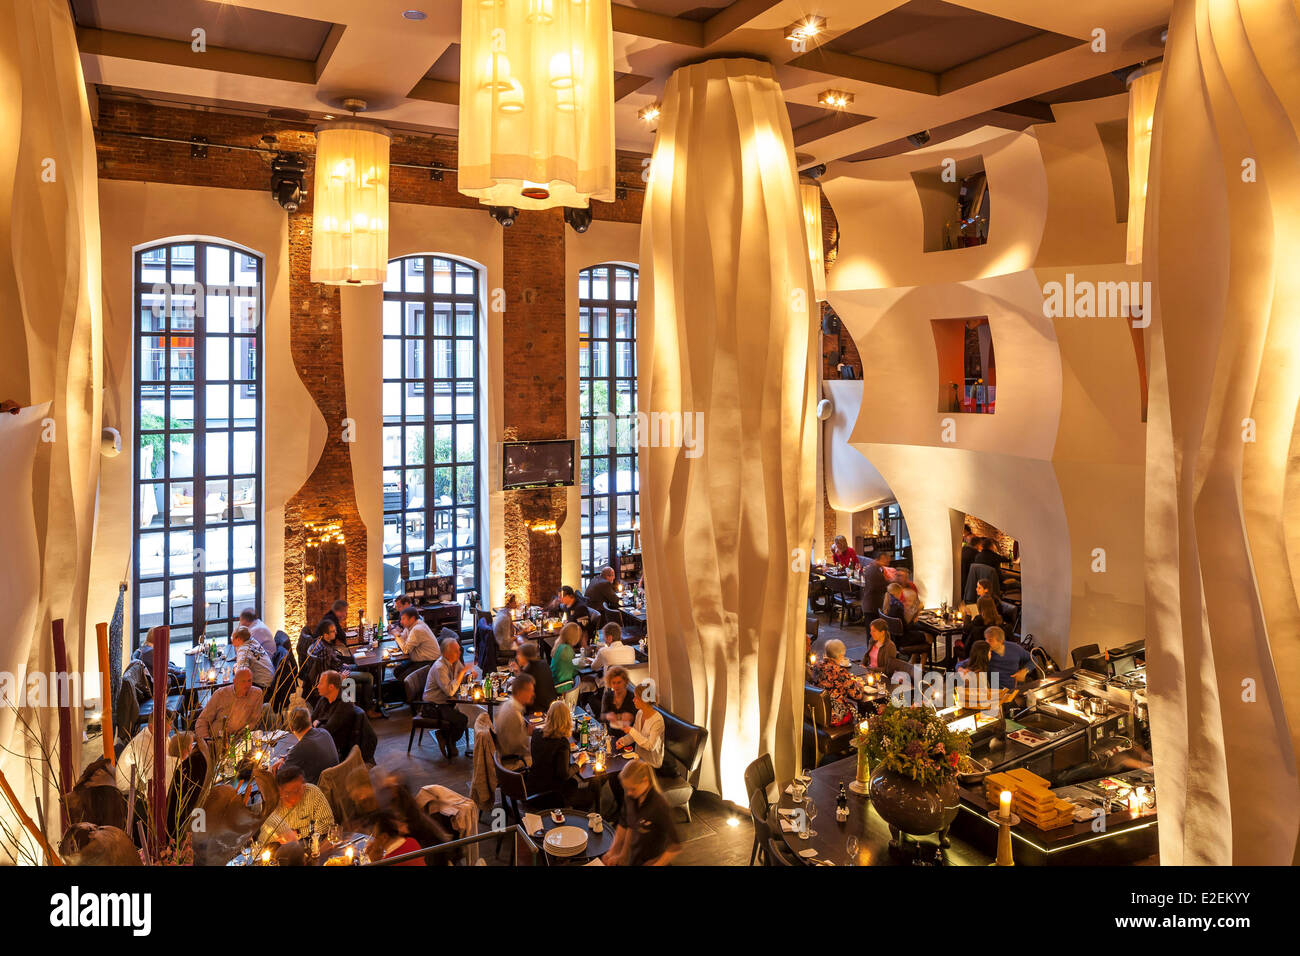 East Hotel Hamburg Germany, Hamburg, St Pauli District, Hotel East By The Architect Stock Photo - Alamy